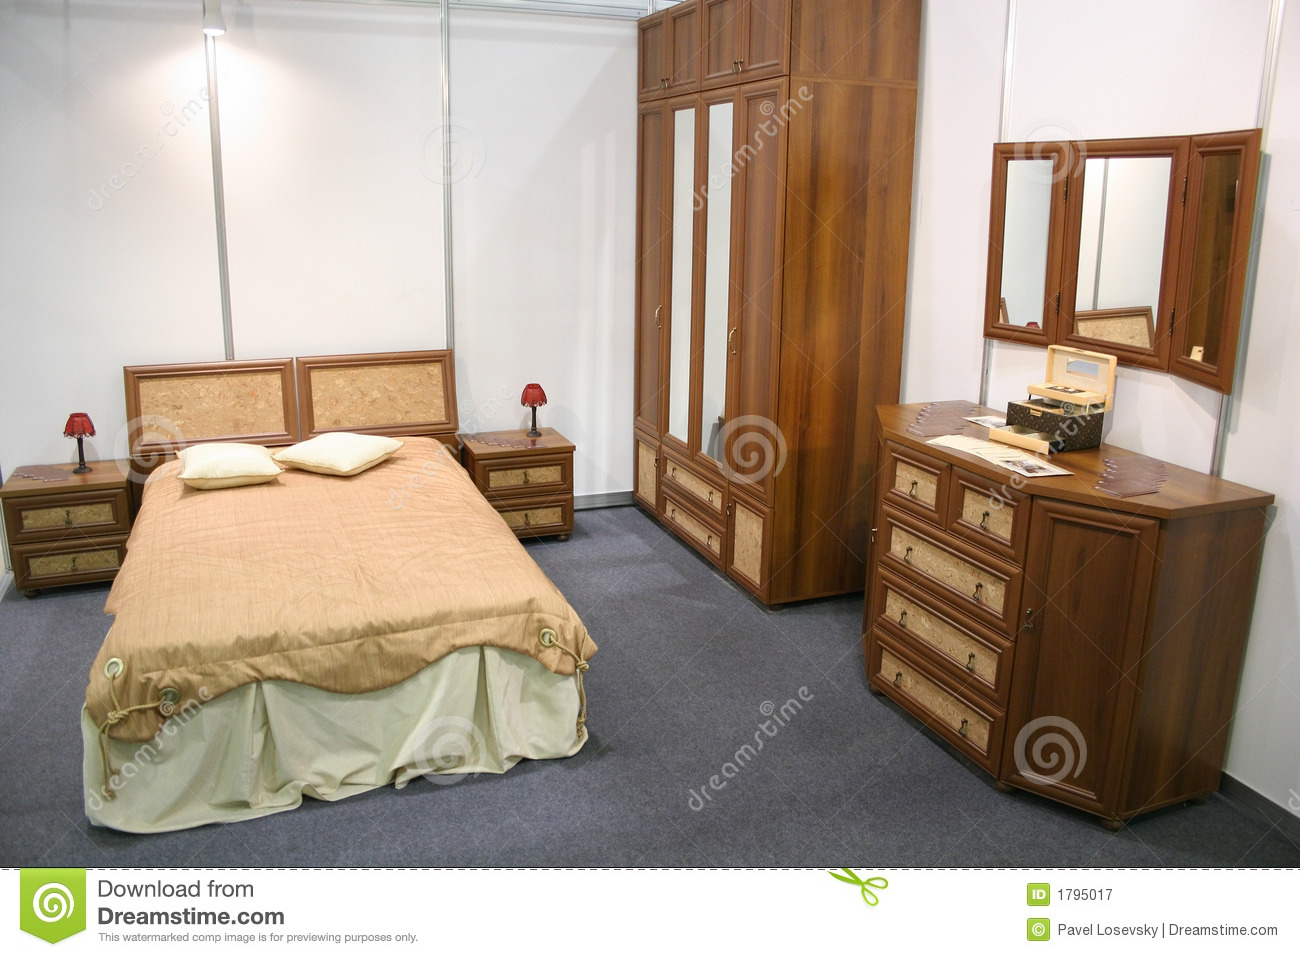 chambre a coucher en bois senegal. Black Bedroom Furniture Sets. Home Design Ideas